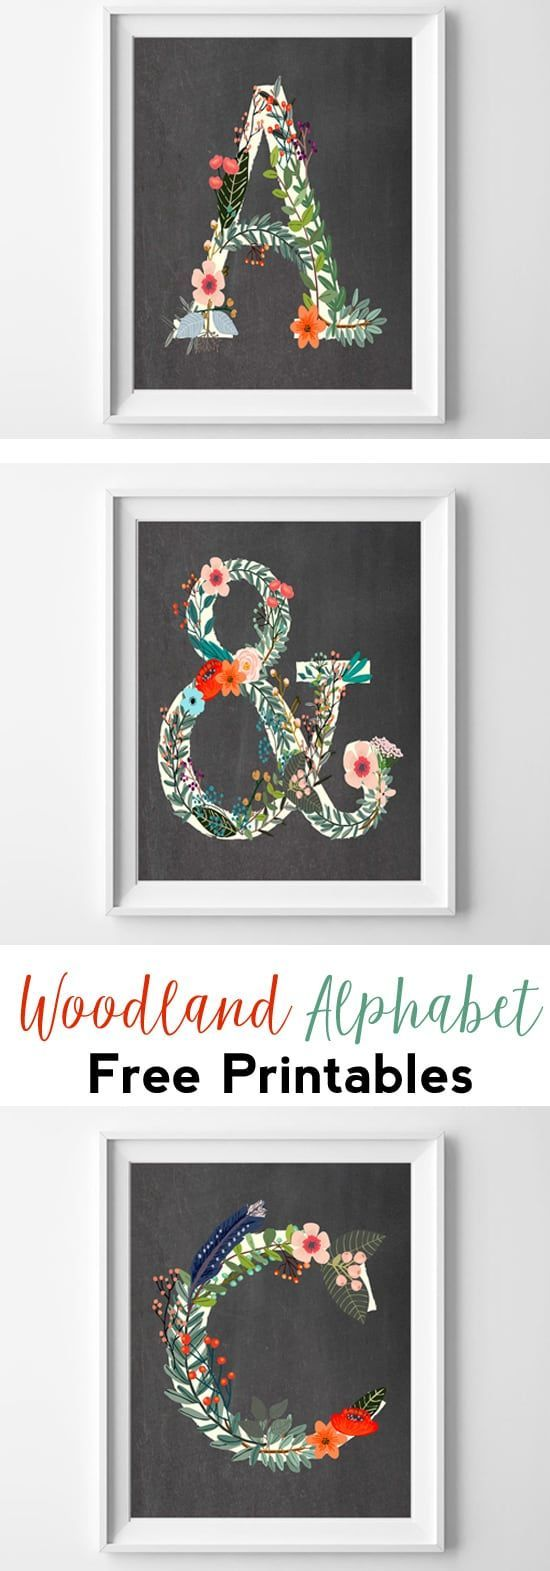 1820 best Printables images on Pinterest | Templates, Activities and ...